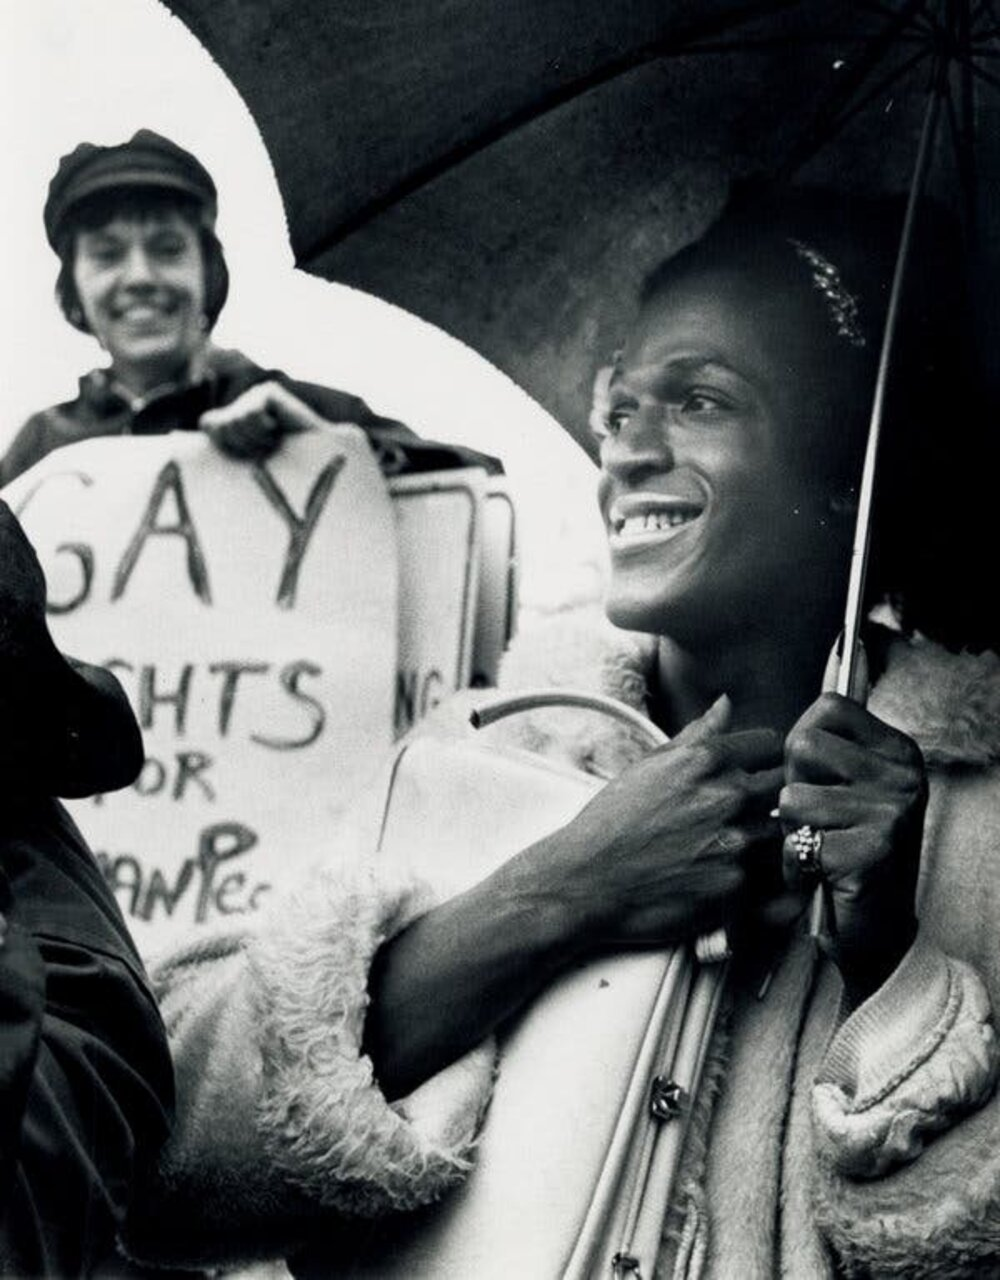 Marsha P. Johnson fought for gay rights her entire life, certifying herself as an icon in history. We look back at her legacy 50 years after Stonewall.